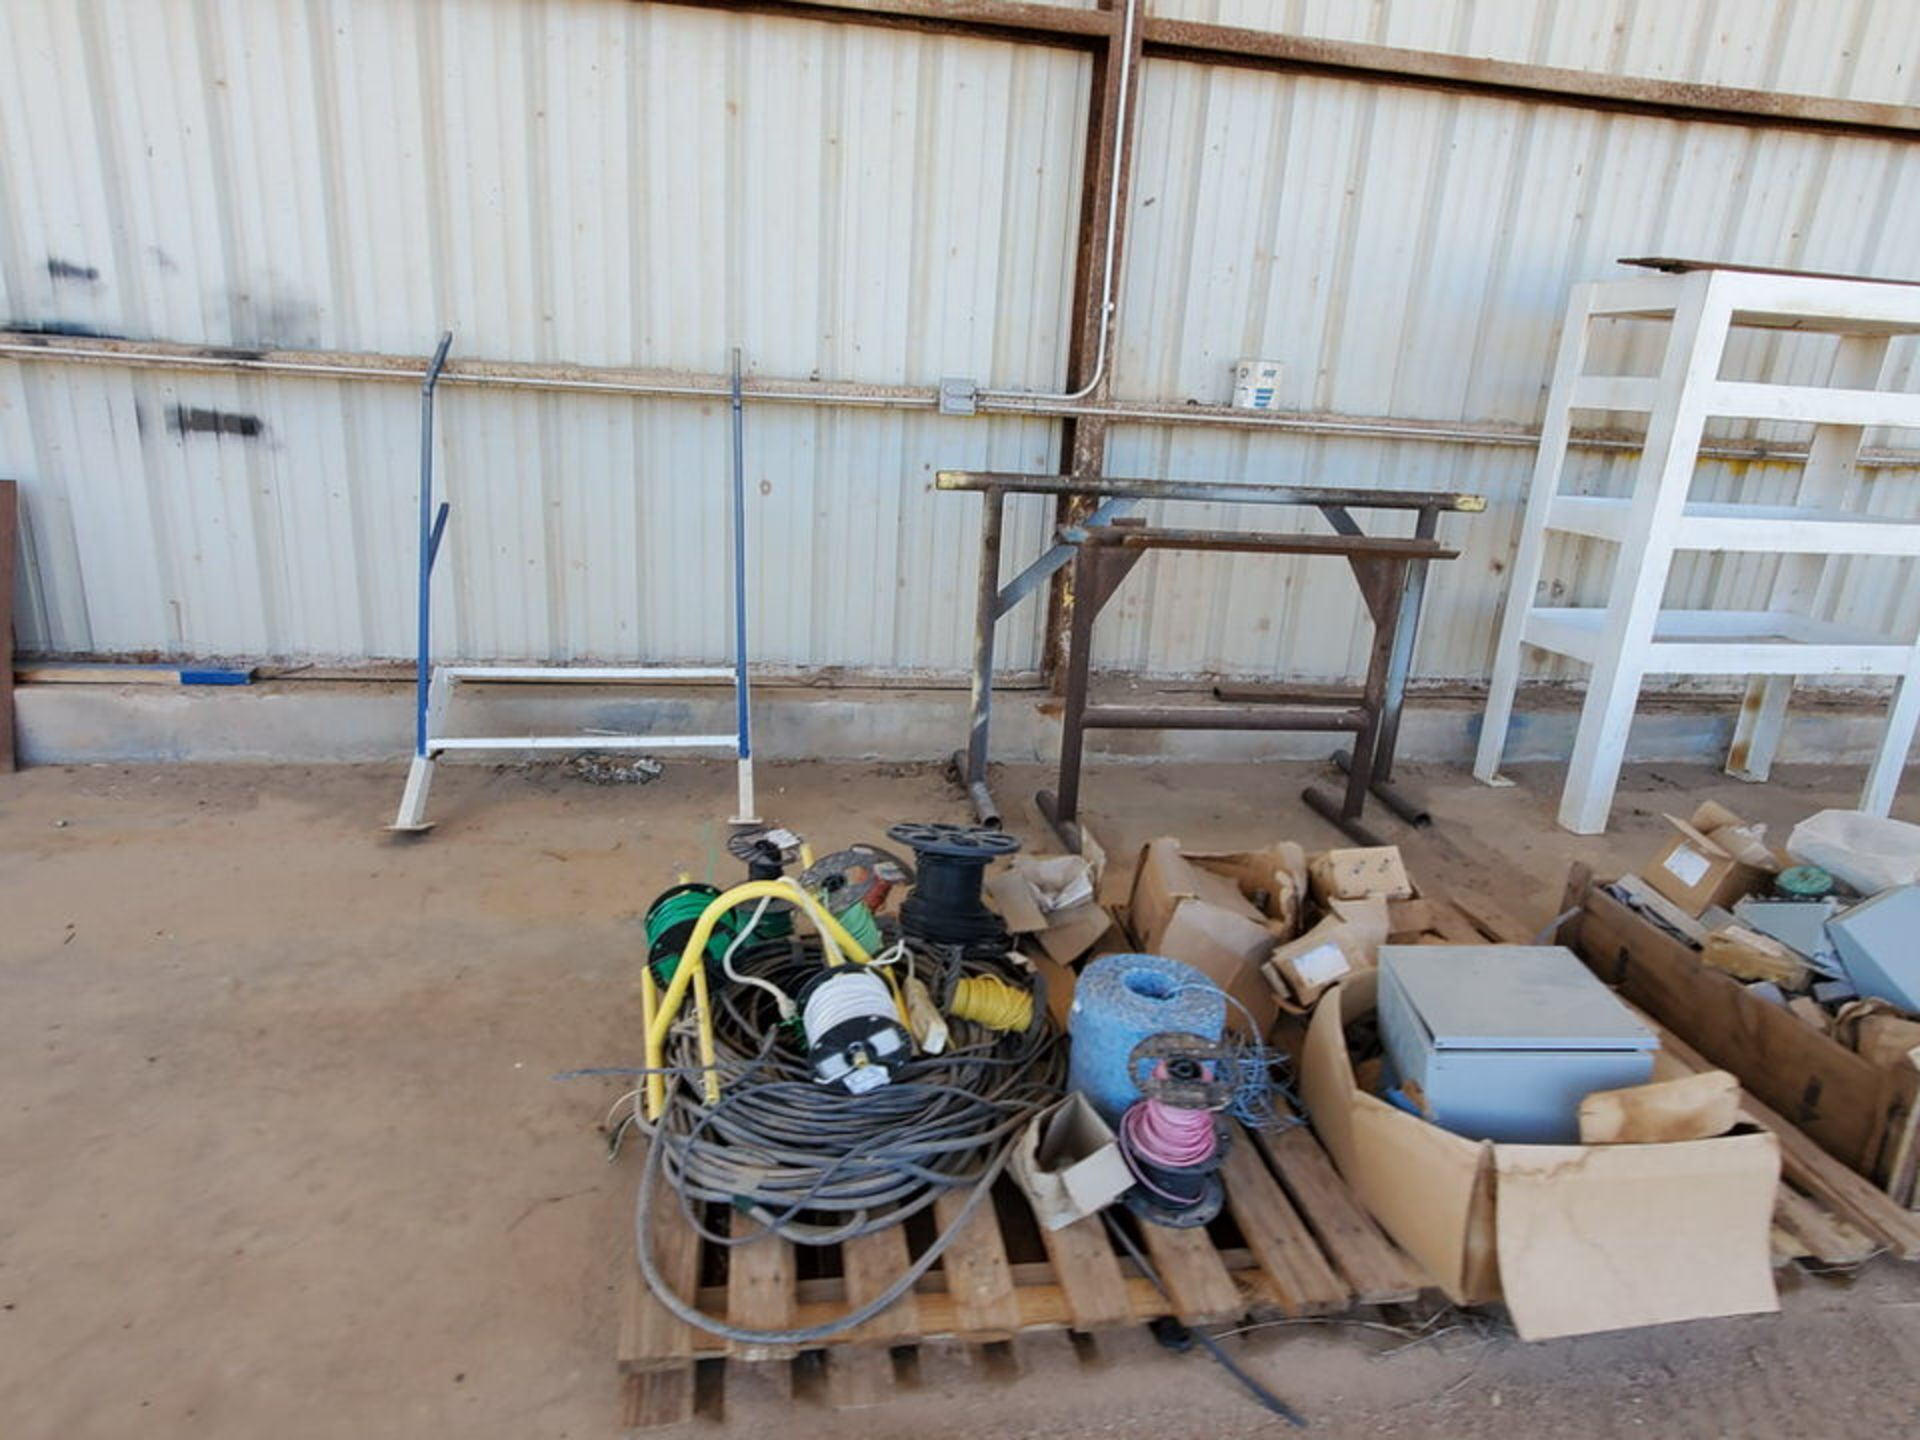 Misc. Matl. To Include But Not Limited To: Lift Basket, Welding Table, Sheet Metal, Ele Wire, Rope - Image 10 of 13